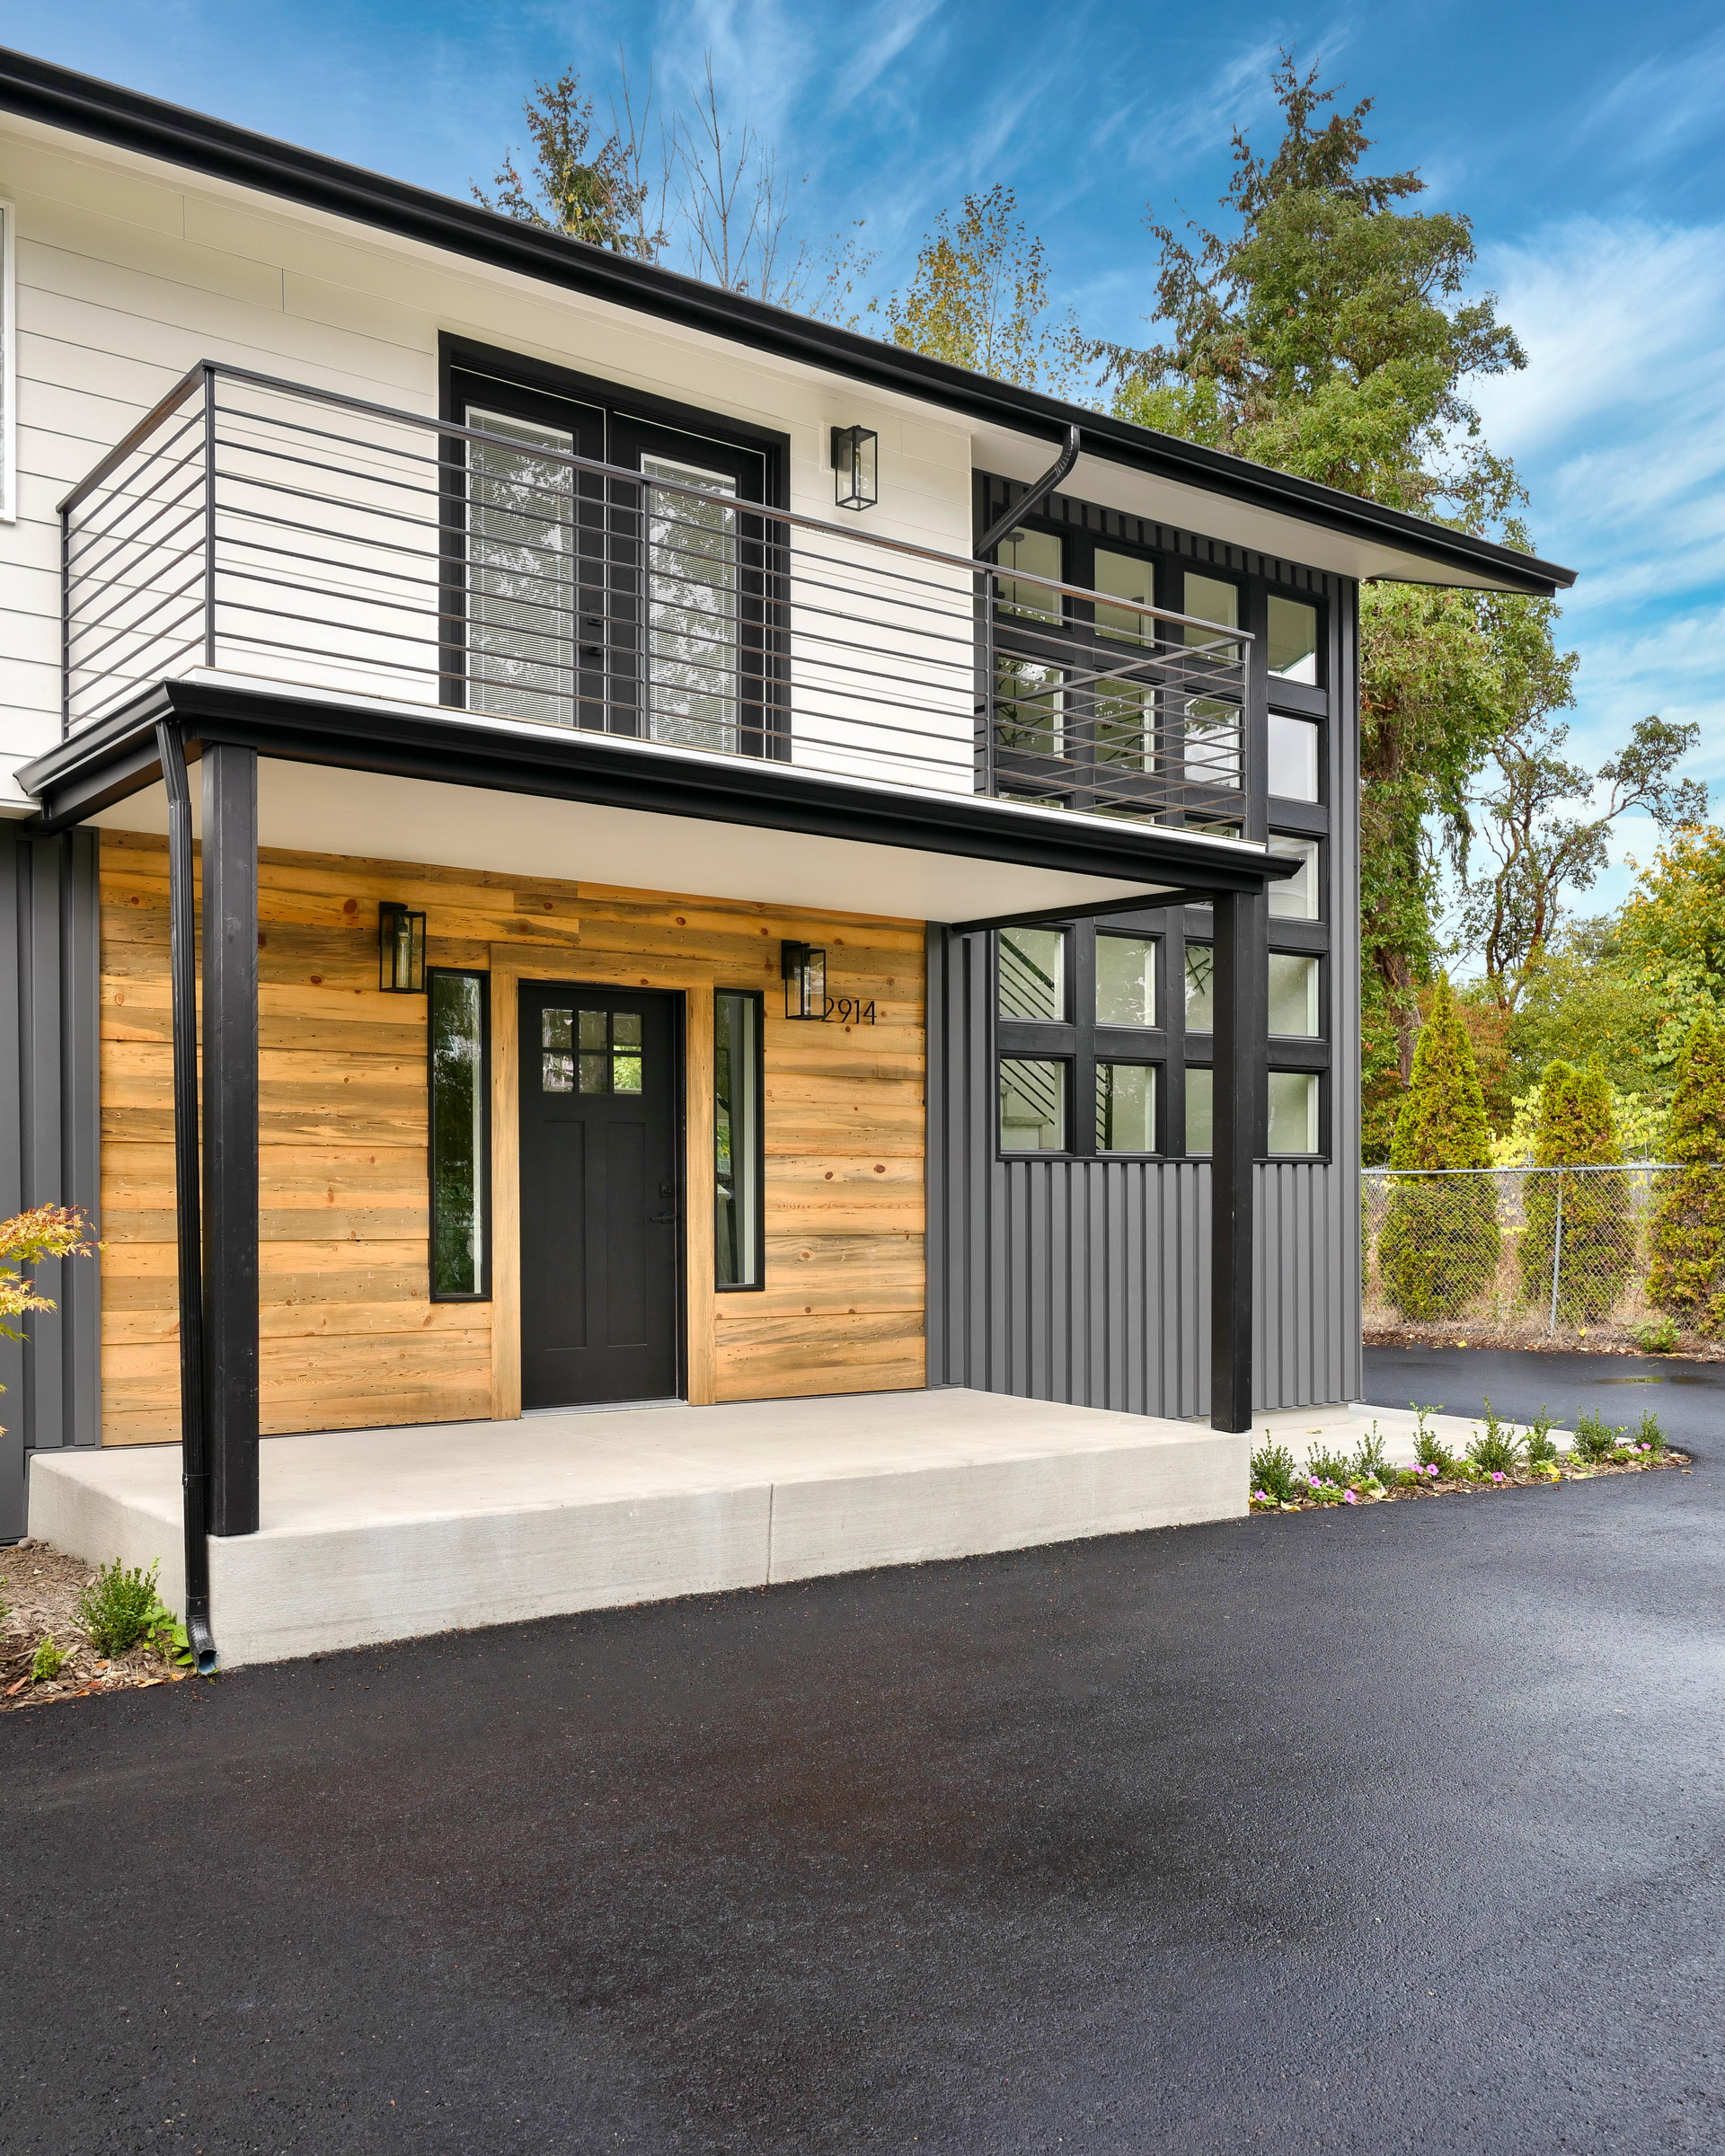 James Hardie lap with reclaimed wood and metal siding in Seattle, WA